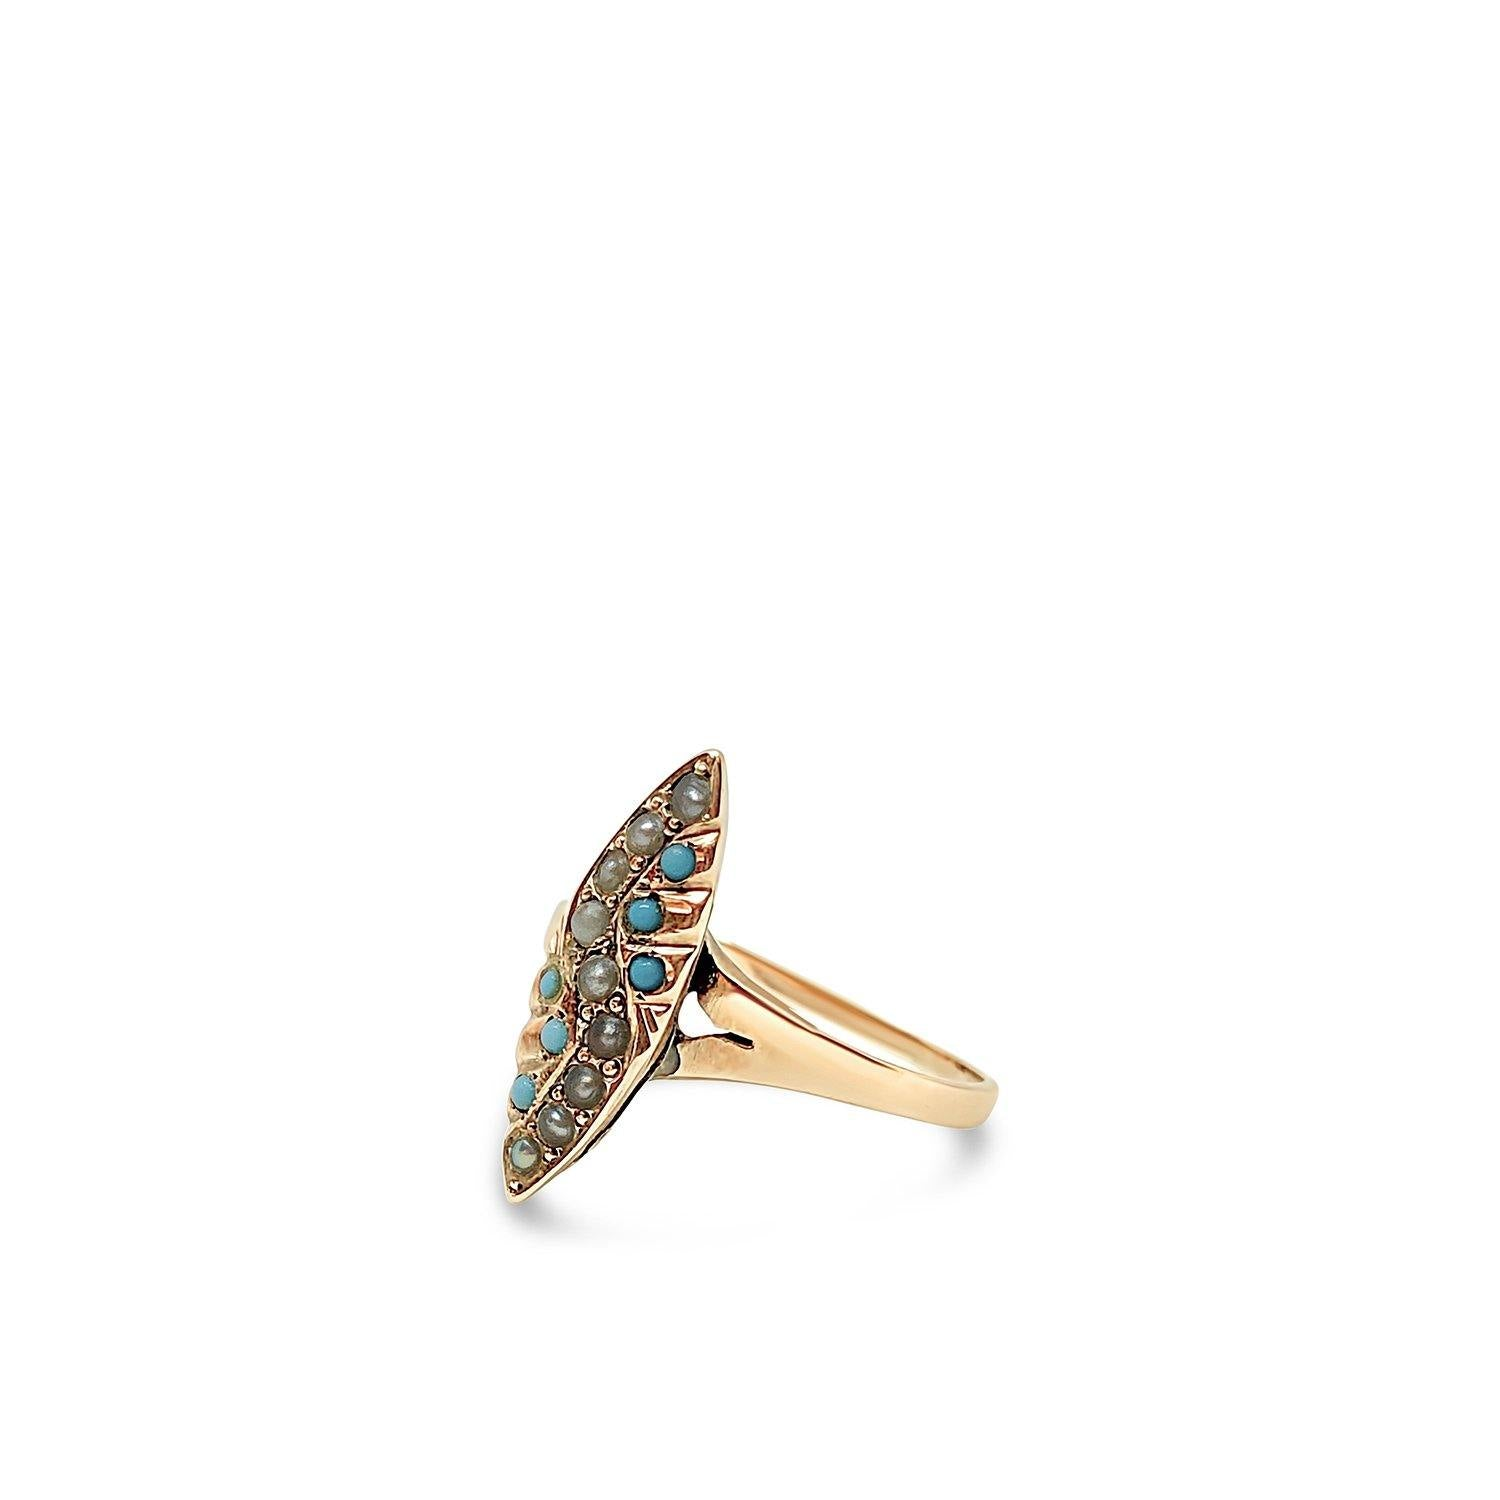 Victorian Navette Seed Pearl & Turquoise Antique Ring- 10K Rose Gold